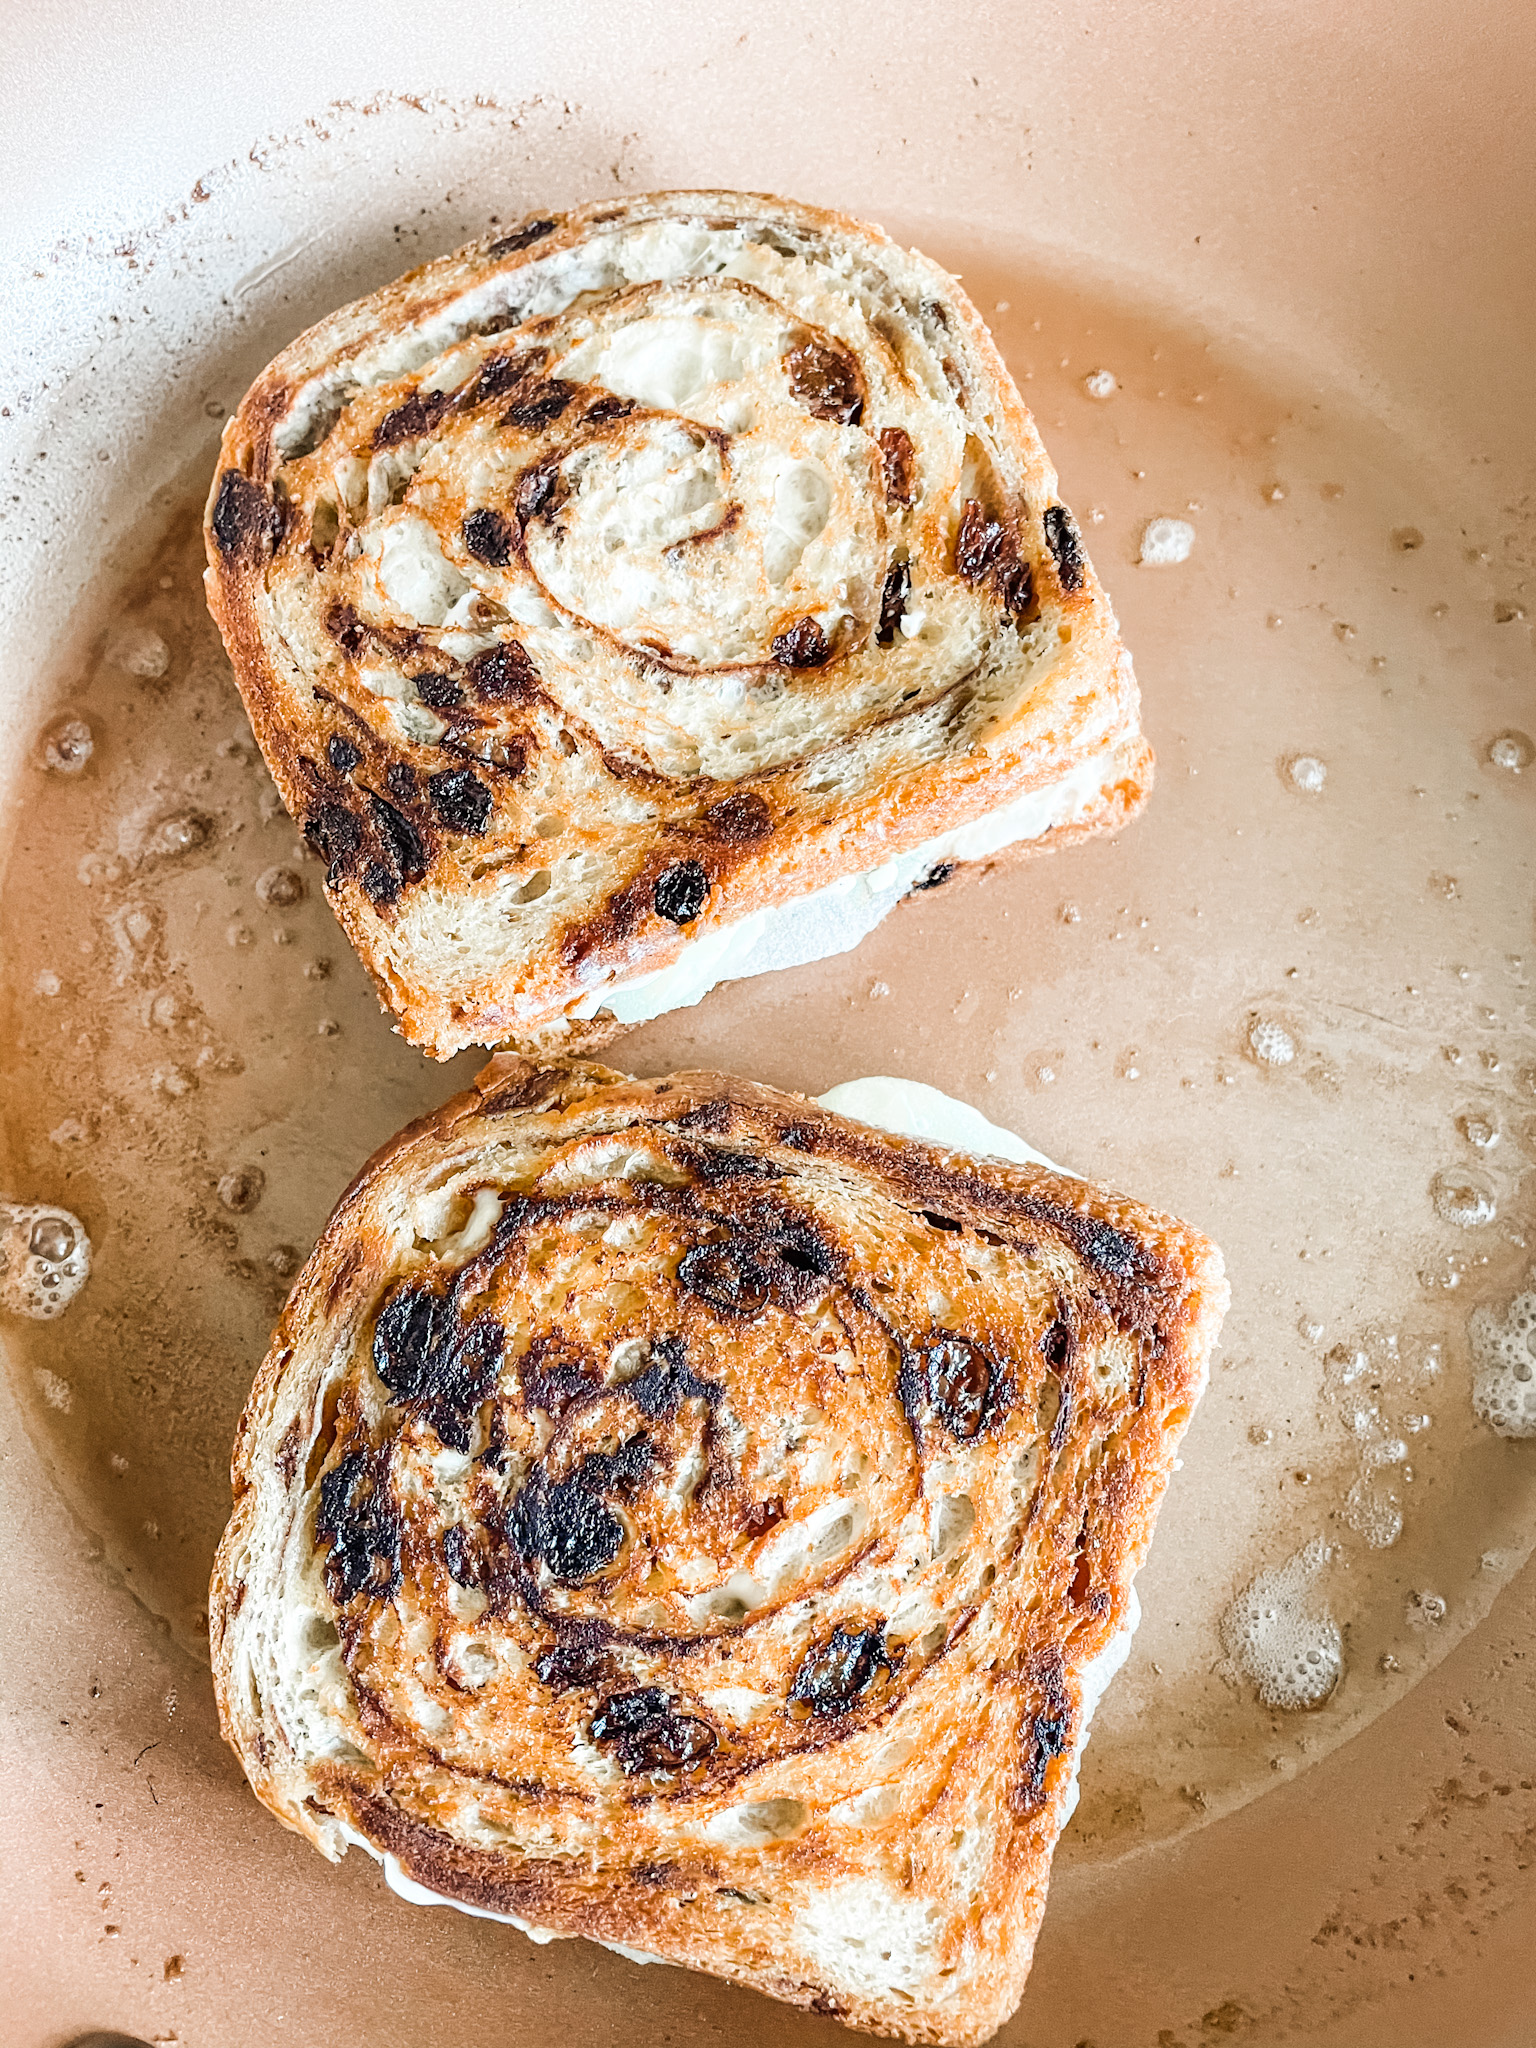 The Grilled Apple and Brie Cheese Sandwiches being toasted in a buttered pan